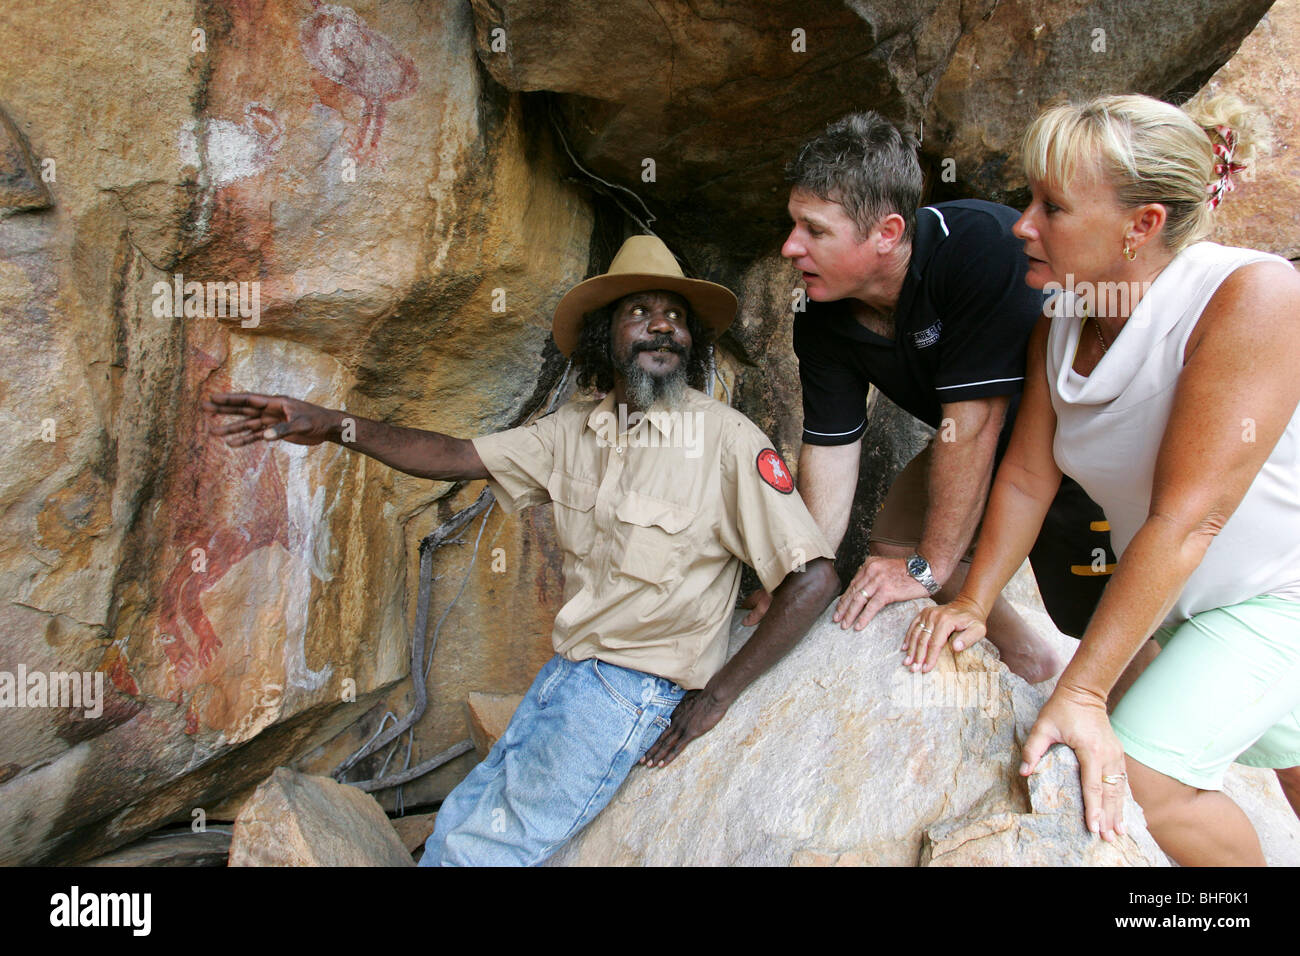 Aboriginal elder Peter Bolgi interprets rock art at a cultural site in the escarpment of Nitmiluk National Park, - Stock Image